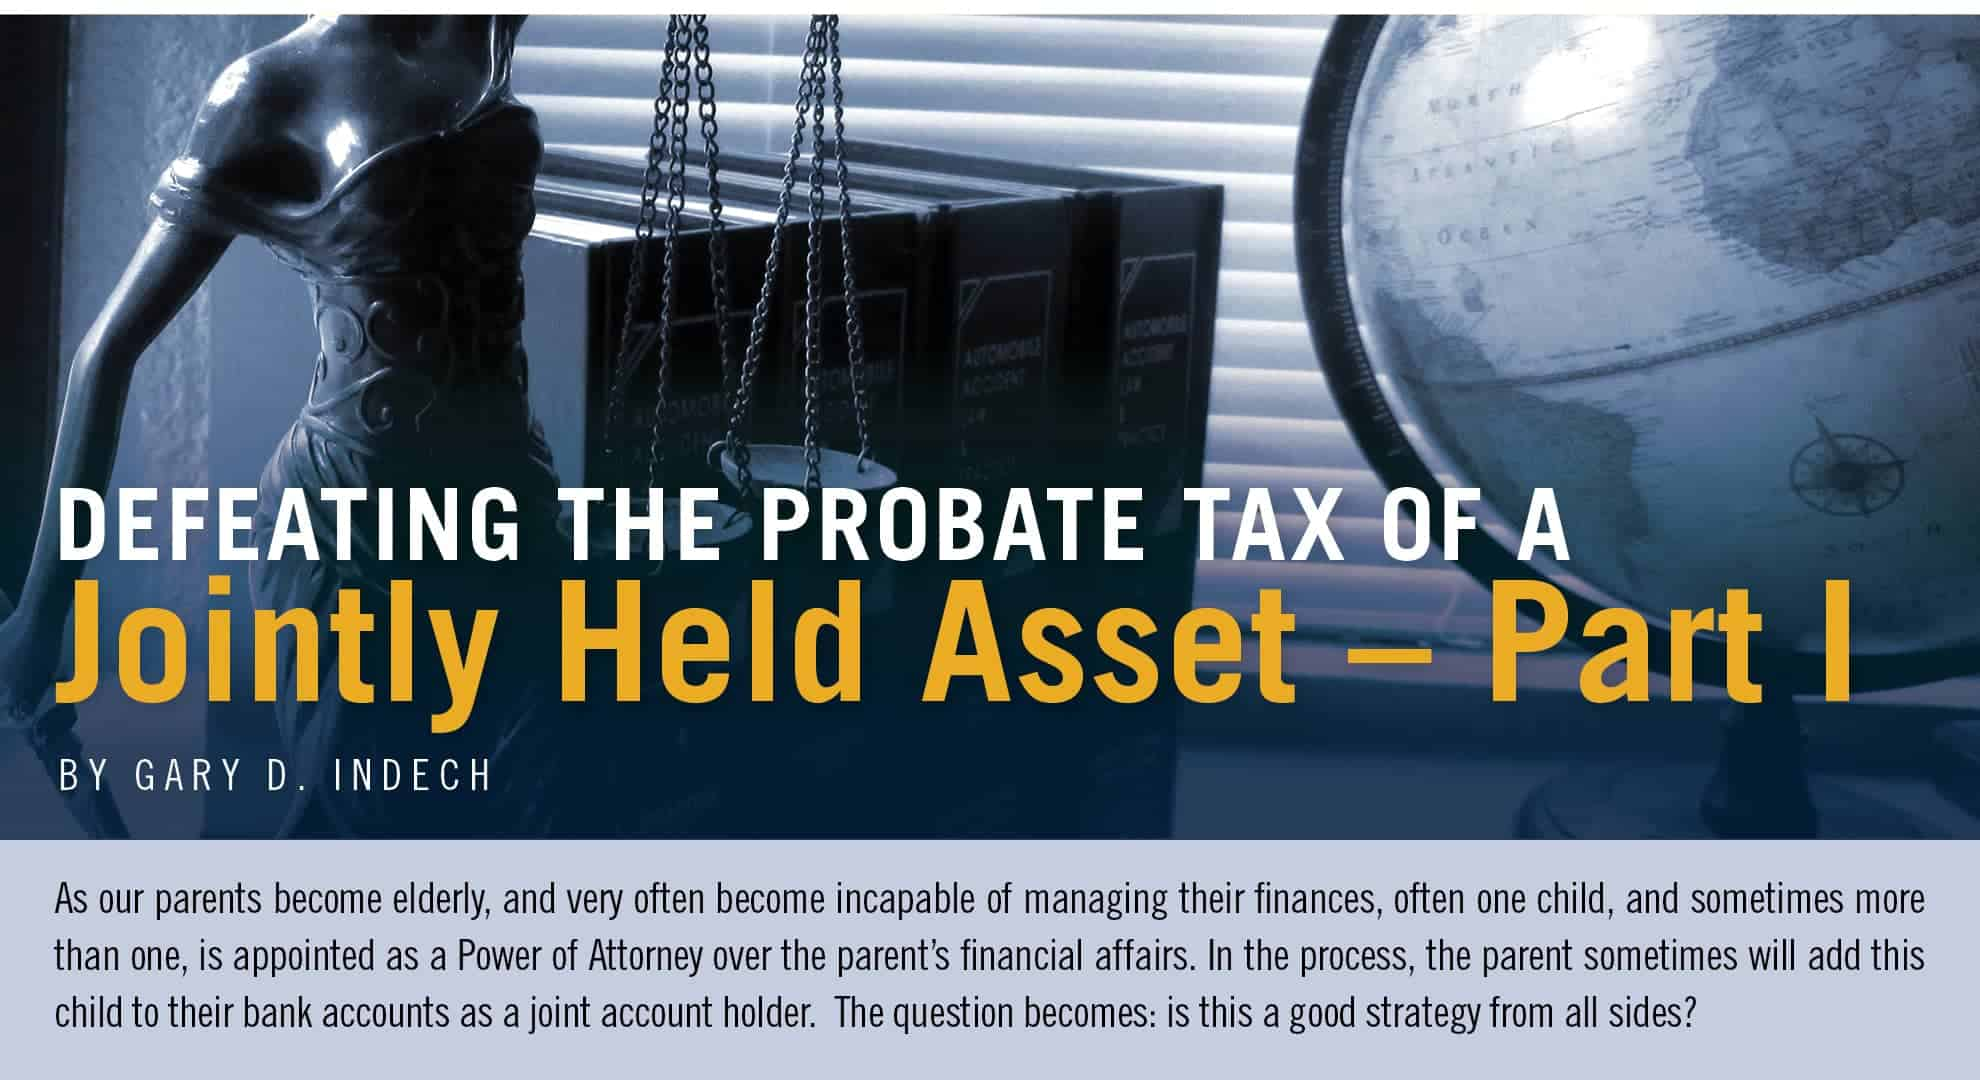 Indech Law - Defeating the Probate Tax of a Jointly Held Asset